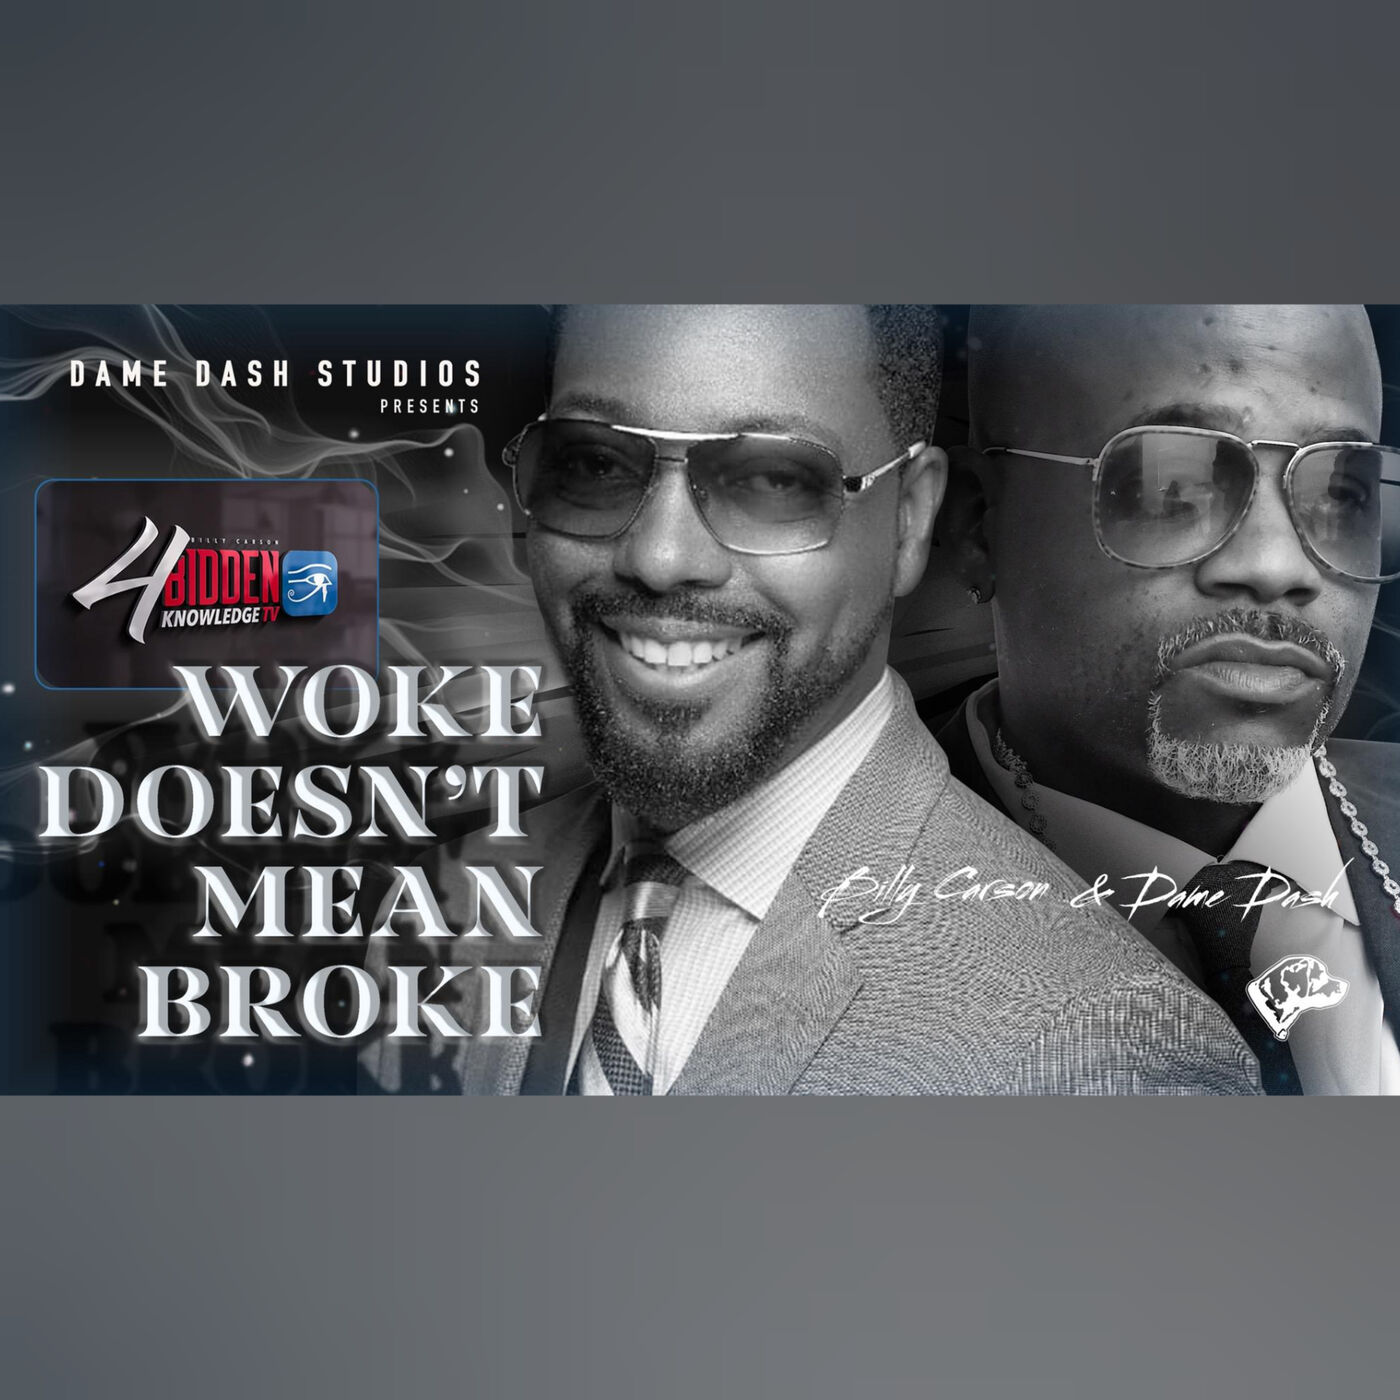 Woke Doesn't Mean Broke - Billy Carson and Dame Dash